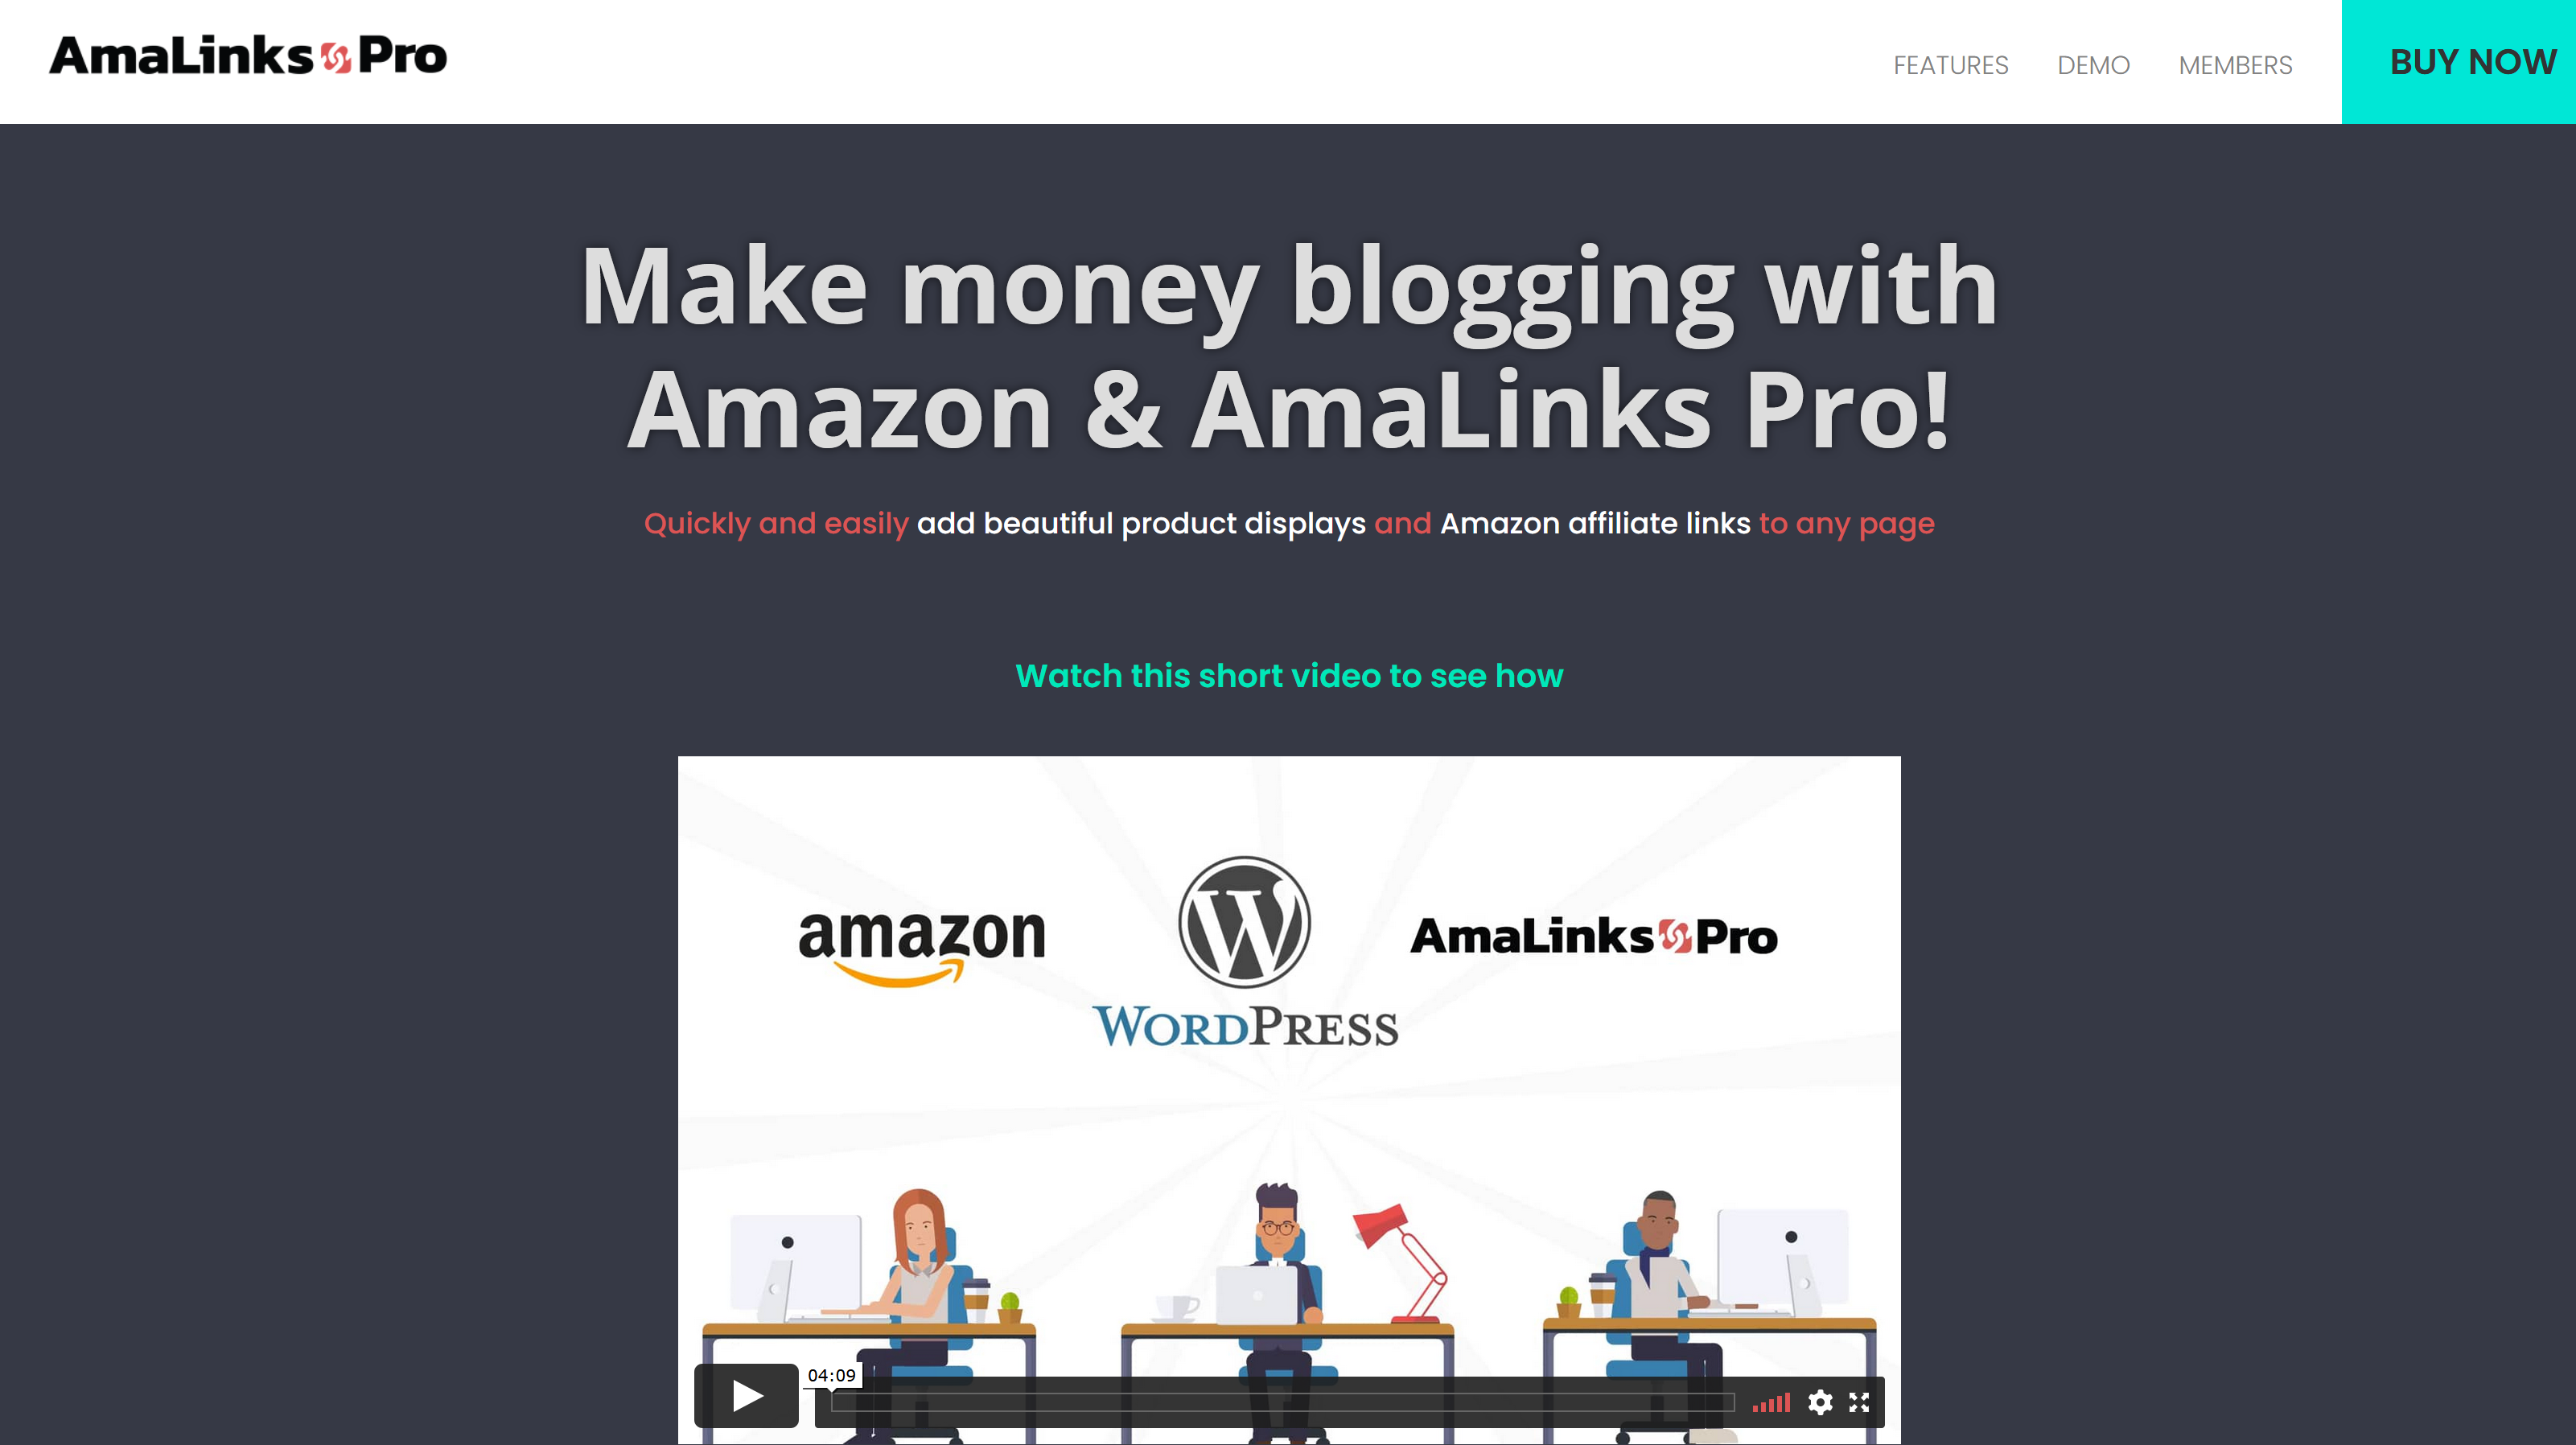 AmaLinks Pro + Tables 1.5.7 – Make Money Blogging With Amazon & AmaLinks Pro